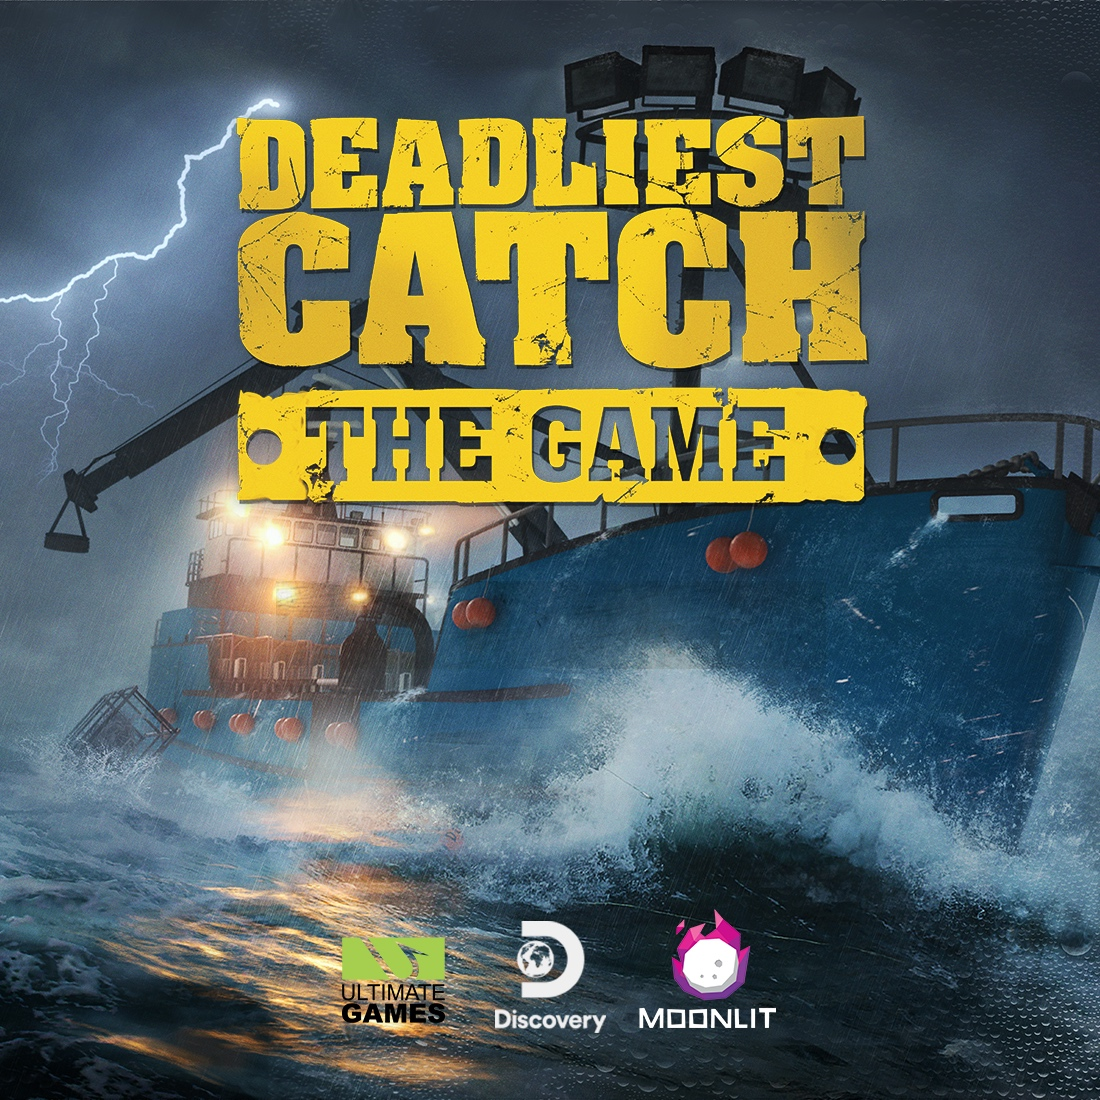 DEADLIEST CATCH: THE GAME - Enter the dangerous world of king crab fishing in the deadly Bering Sea! Take command of your own fishing vessel, use realistic equipment, combat hazardous Alaskan waters and become the world's best crab catcher!